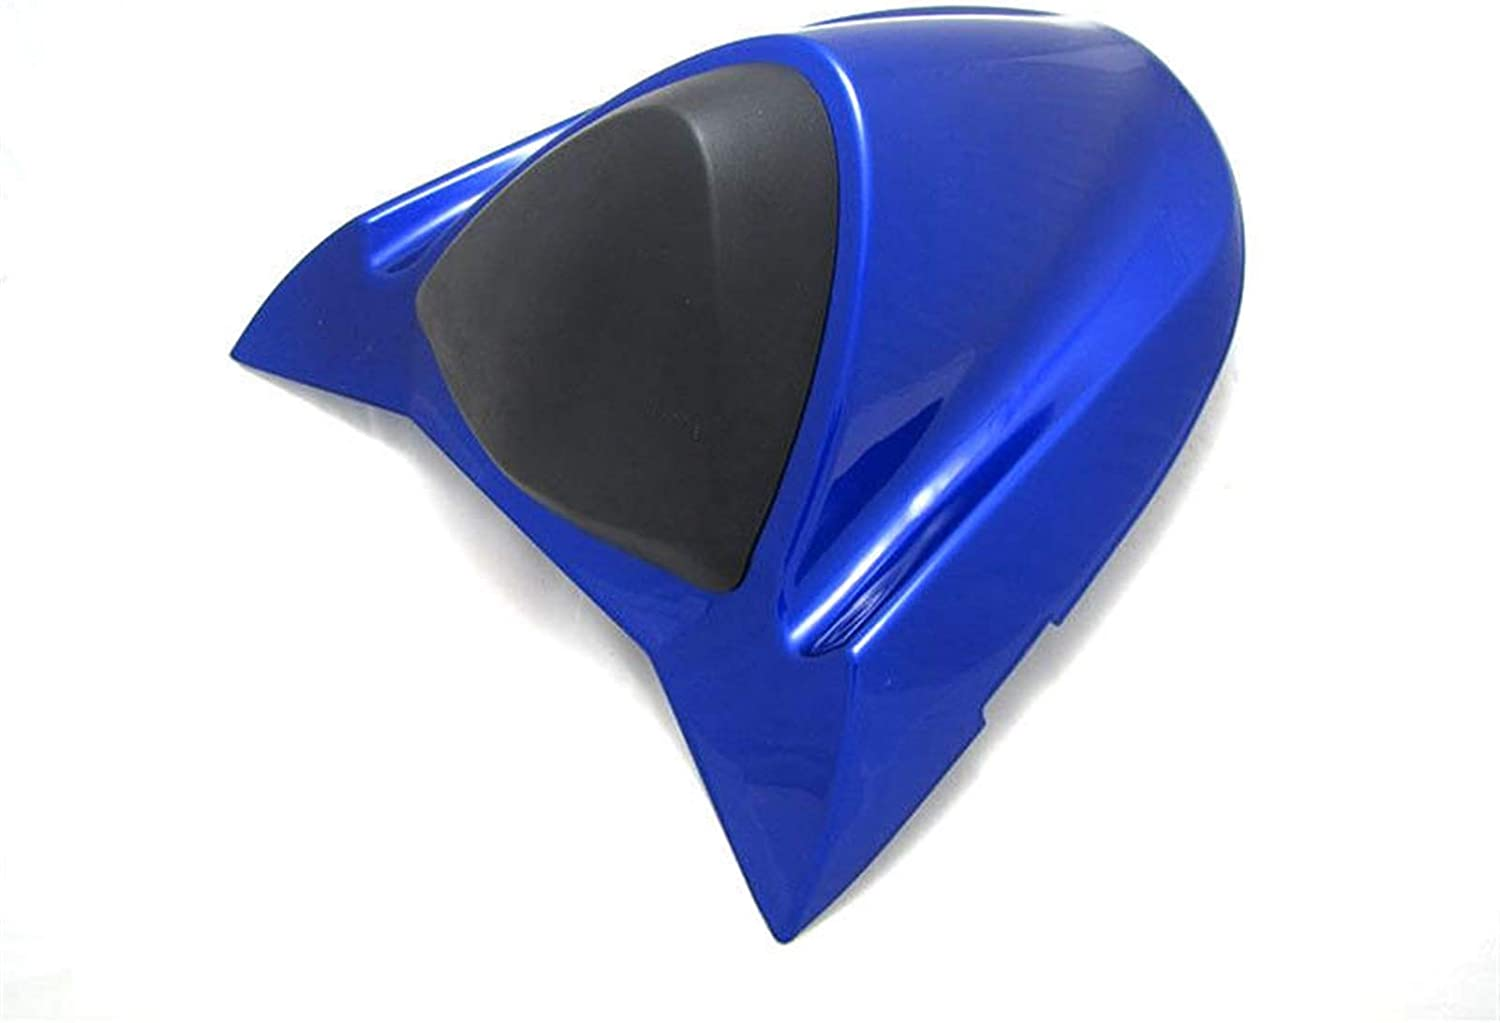 LIBEIBEI Fairing Rear Seat Cowl Cover Fit 04- Kawasaki Max 80% OFF ZX10R Limited price for